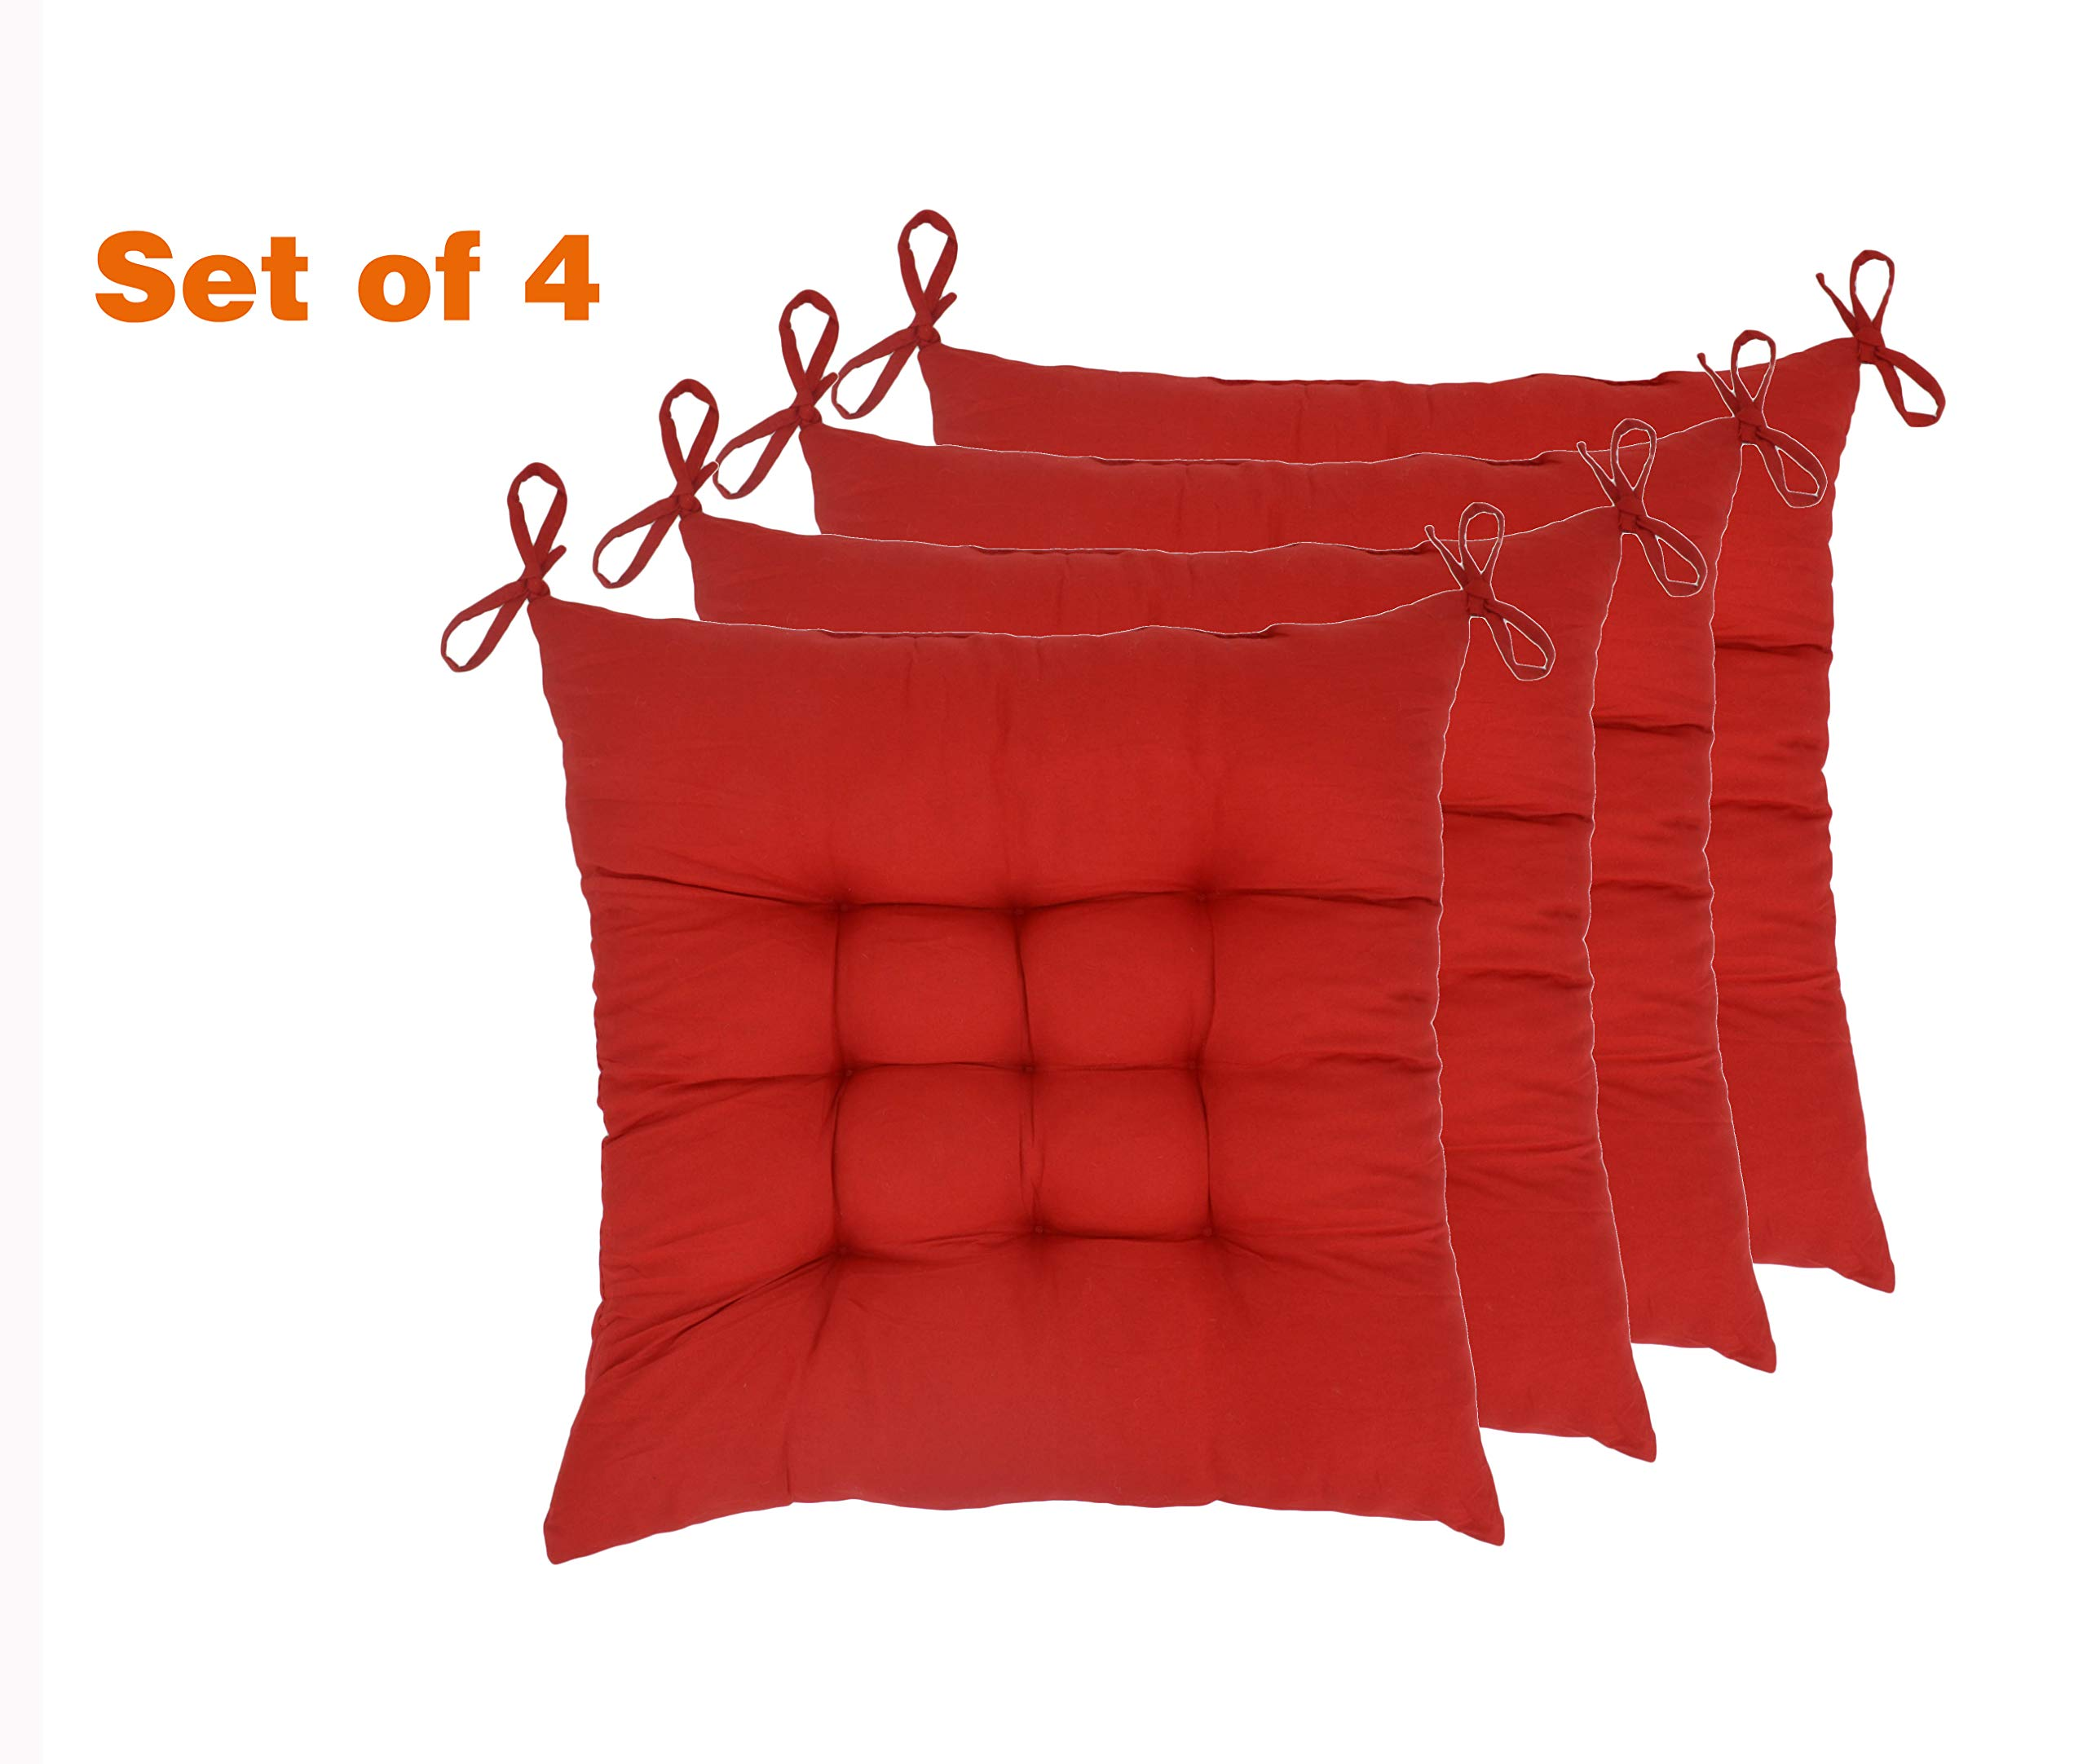 Elfjoy Solid Square Tufted Chair Pads Set of 4 Indoor/Outdoor Cushions Seats With Ties (Red) by Elfjoy